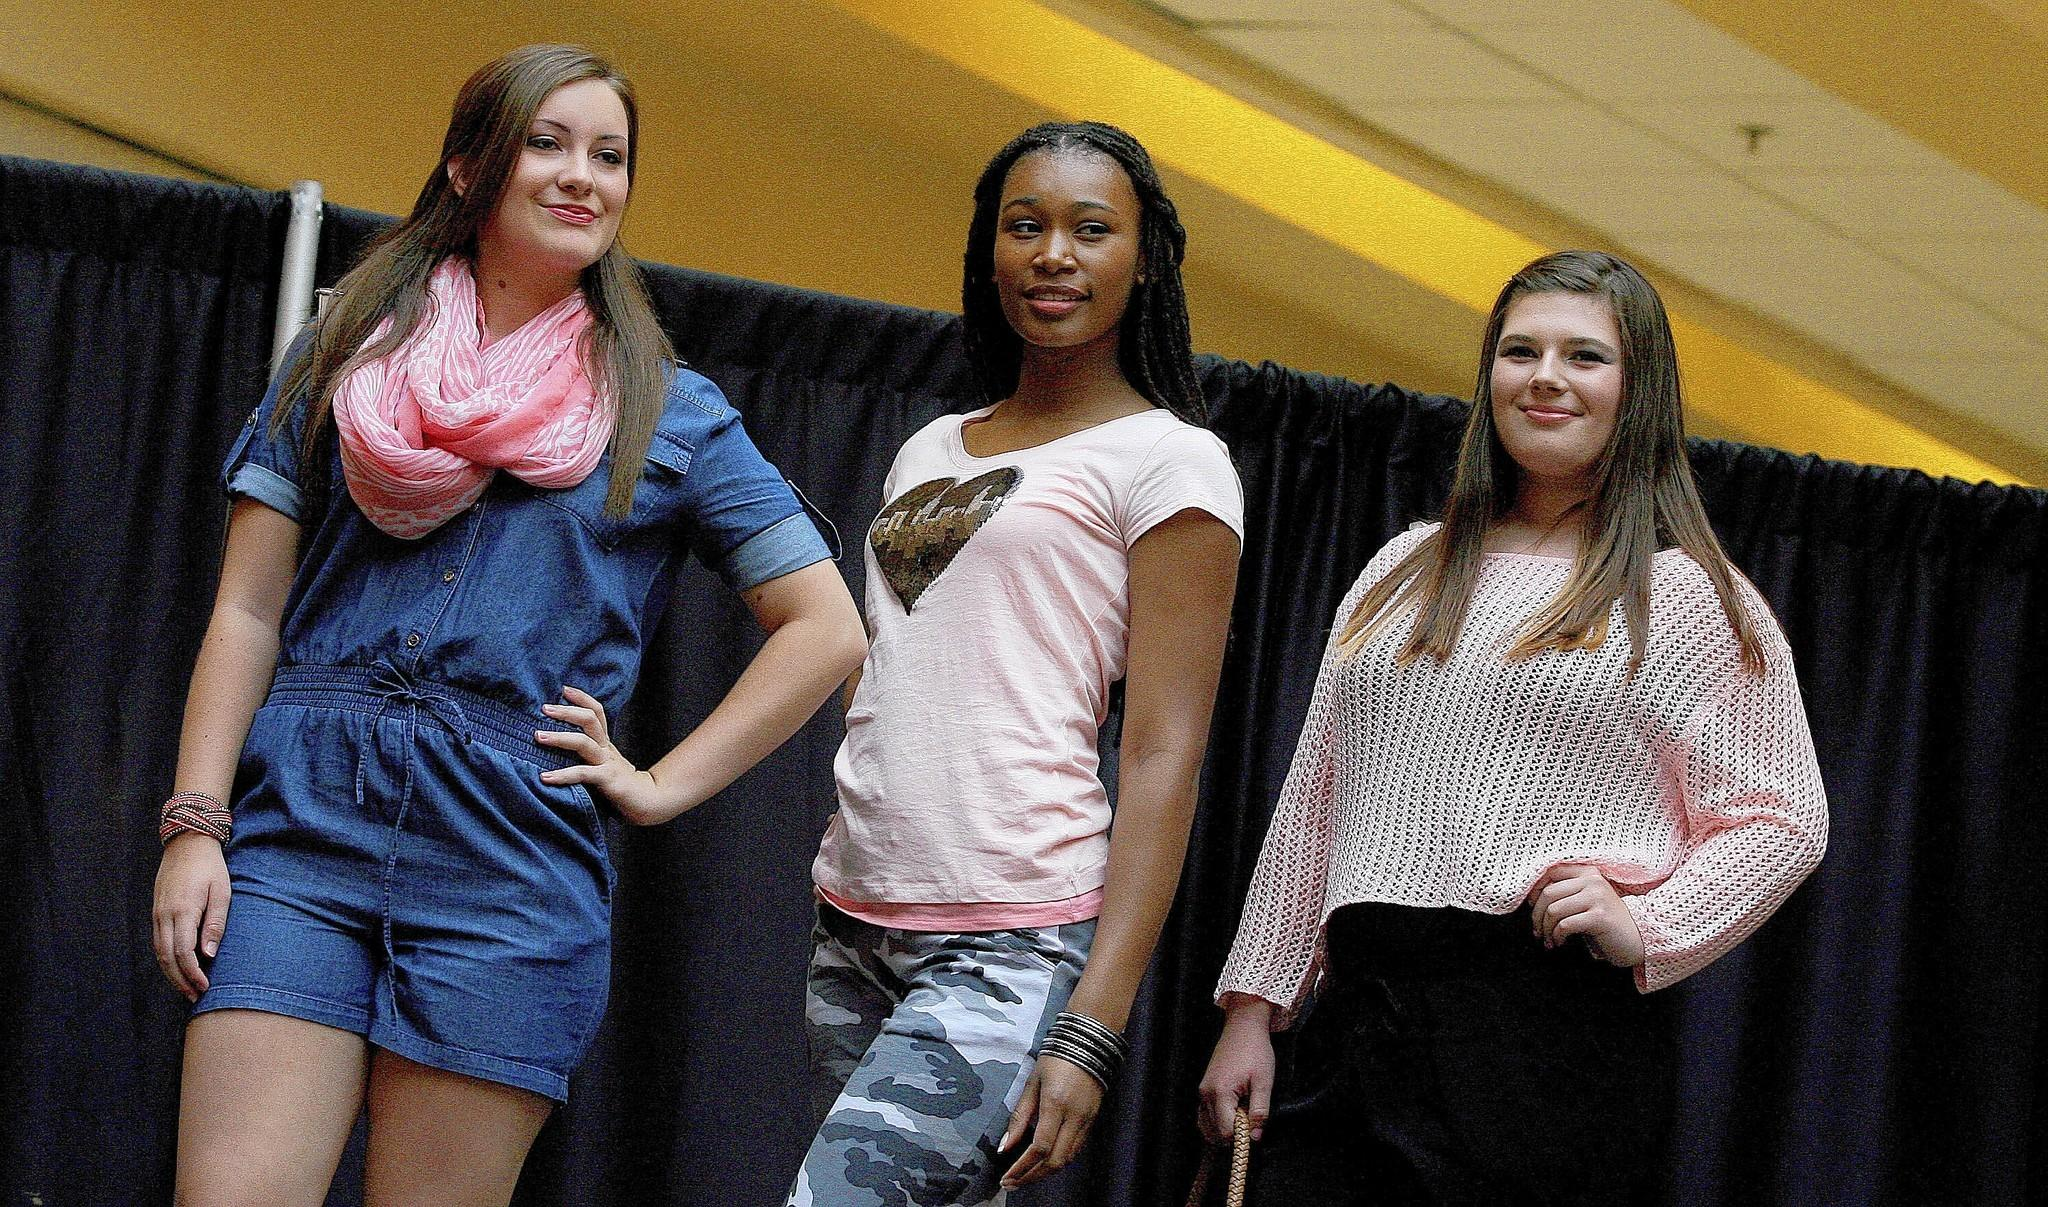 Sydney Cook, Tiarra Johnson and Jenna Davidson model the latest in back-to-school fashion Saturday at Patrick Henry Mall.